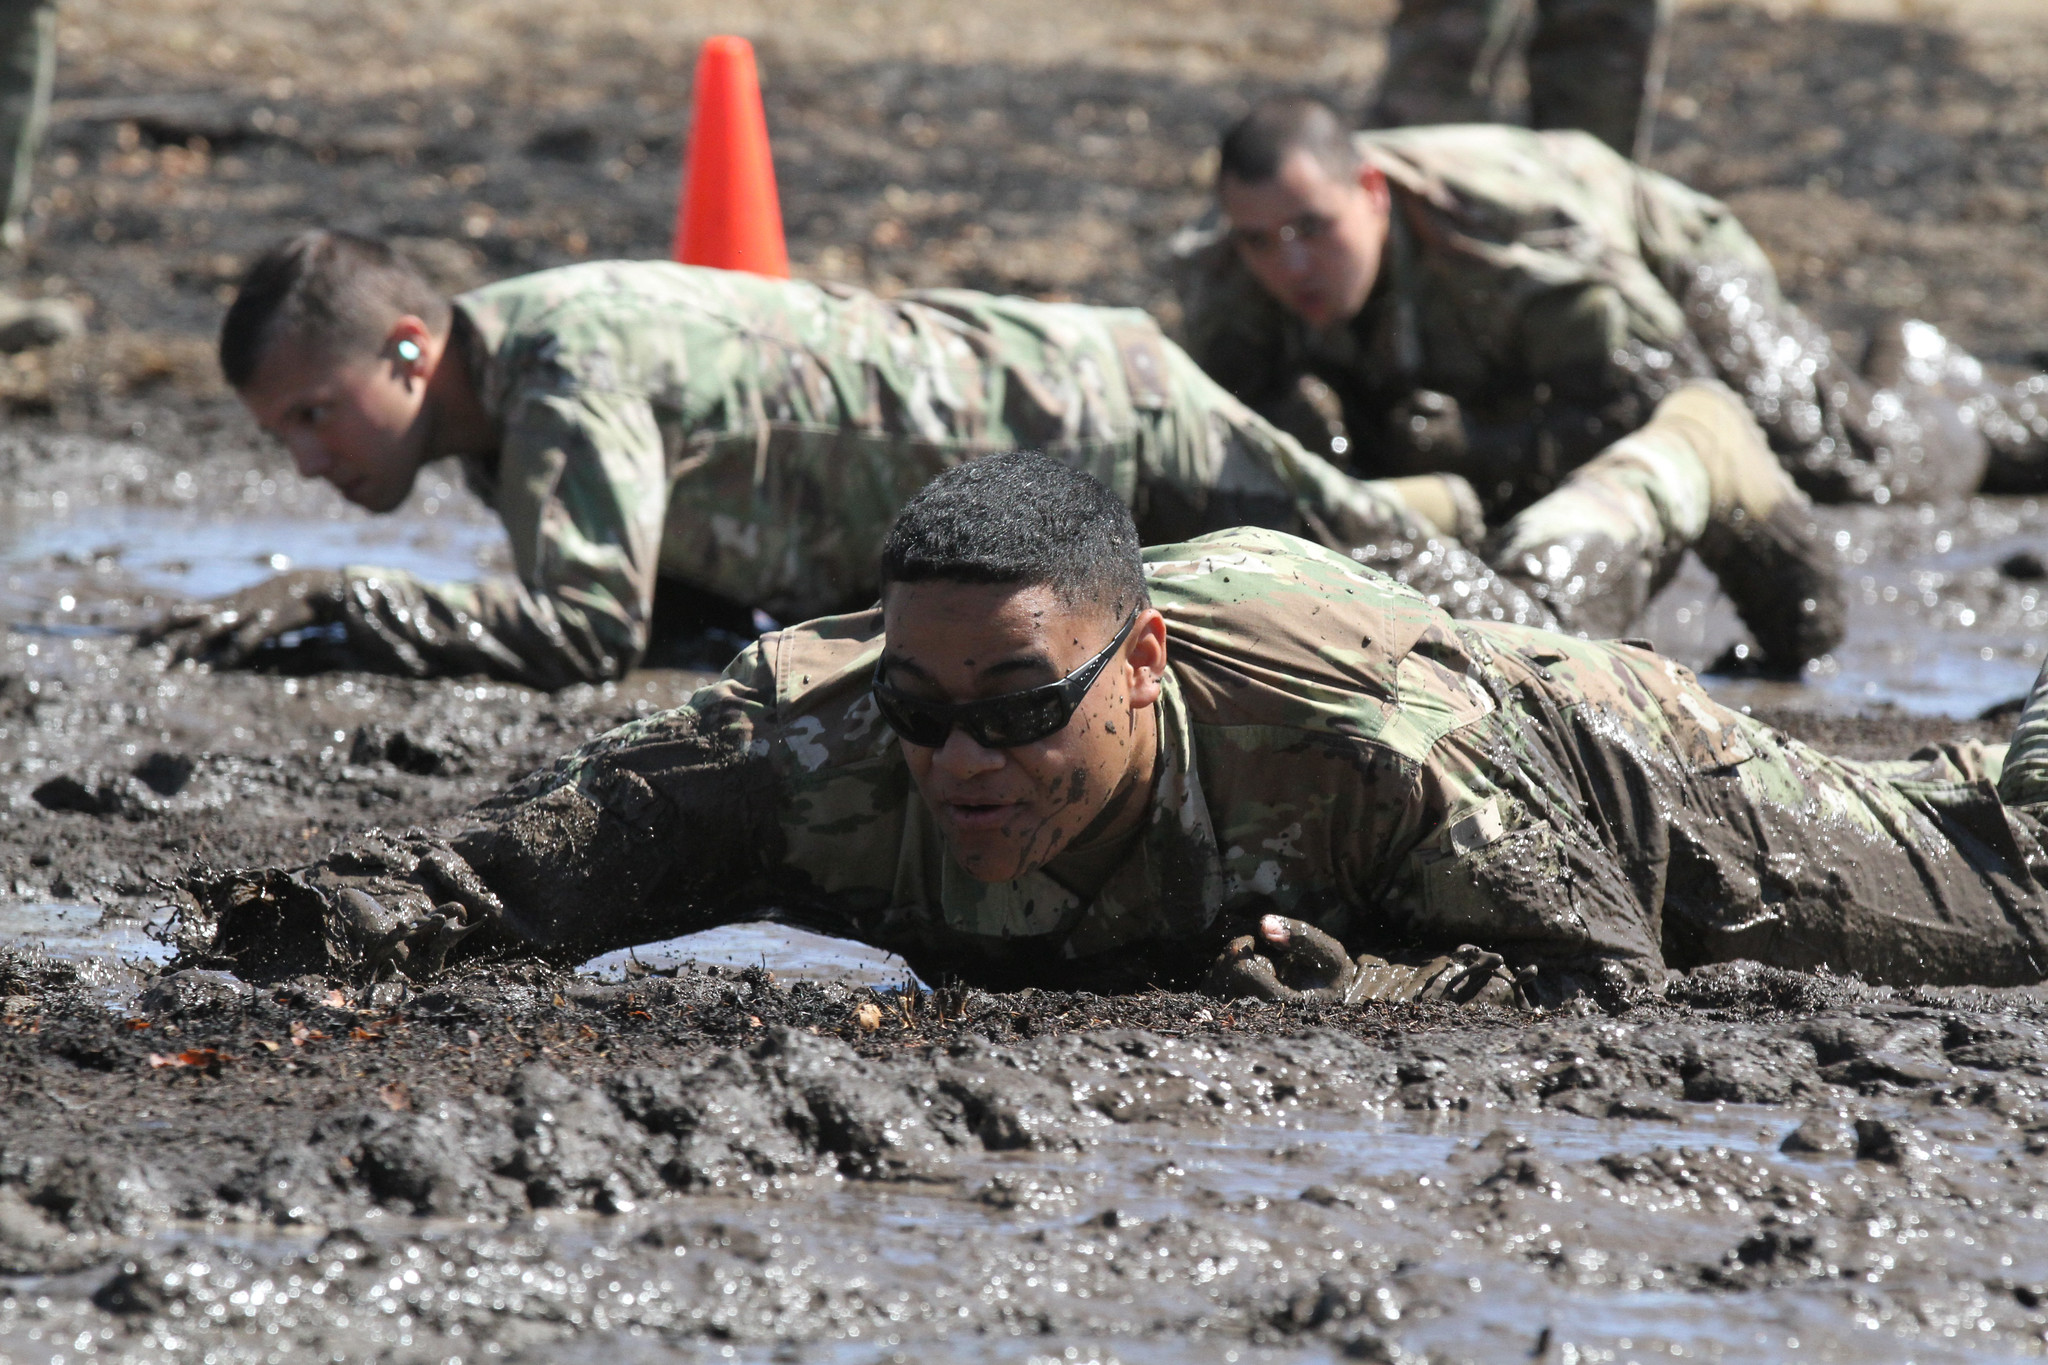 U.S. Army Sgt. Miguel Leyua of the California National Guard's 330th Military Police Company, 143rd Military Police Battalion, 49th Military Police Brigade, one of the cadres of the 49th's 2020 Best Warrior Competition, low crawls through a mud pit during the competition, Aug. 8-12, 2020 at Camp Roberts, Calif. (Staff Sgt. Eddie Siguenza/Army National Guard)